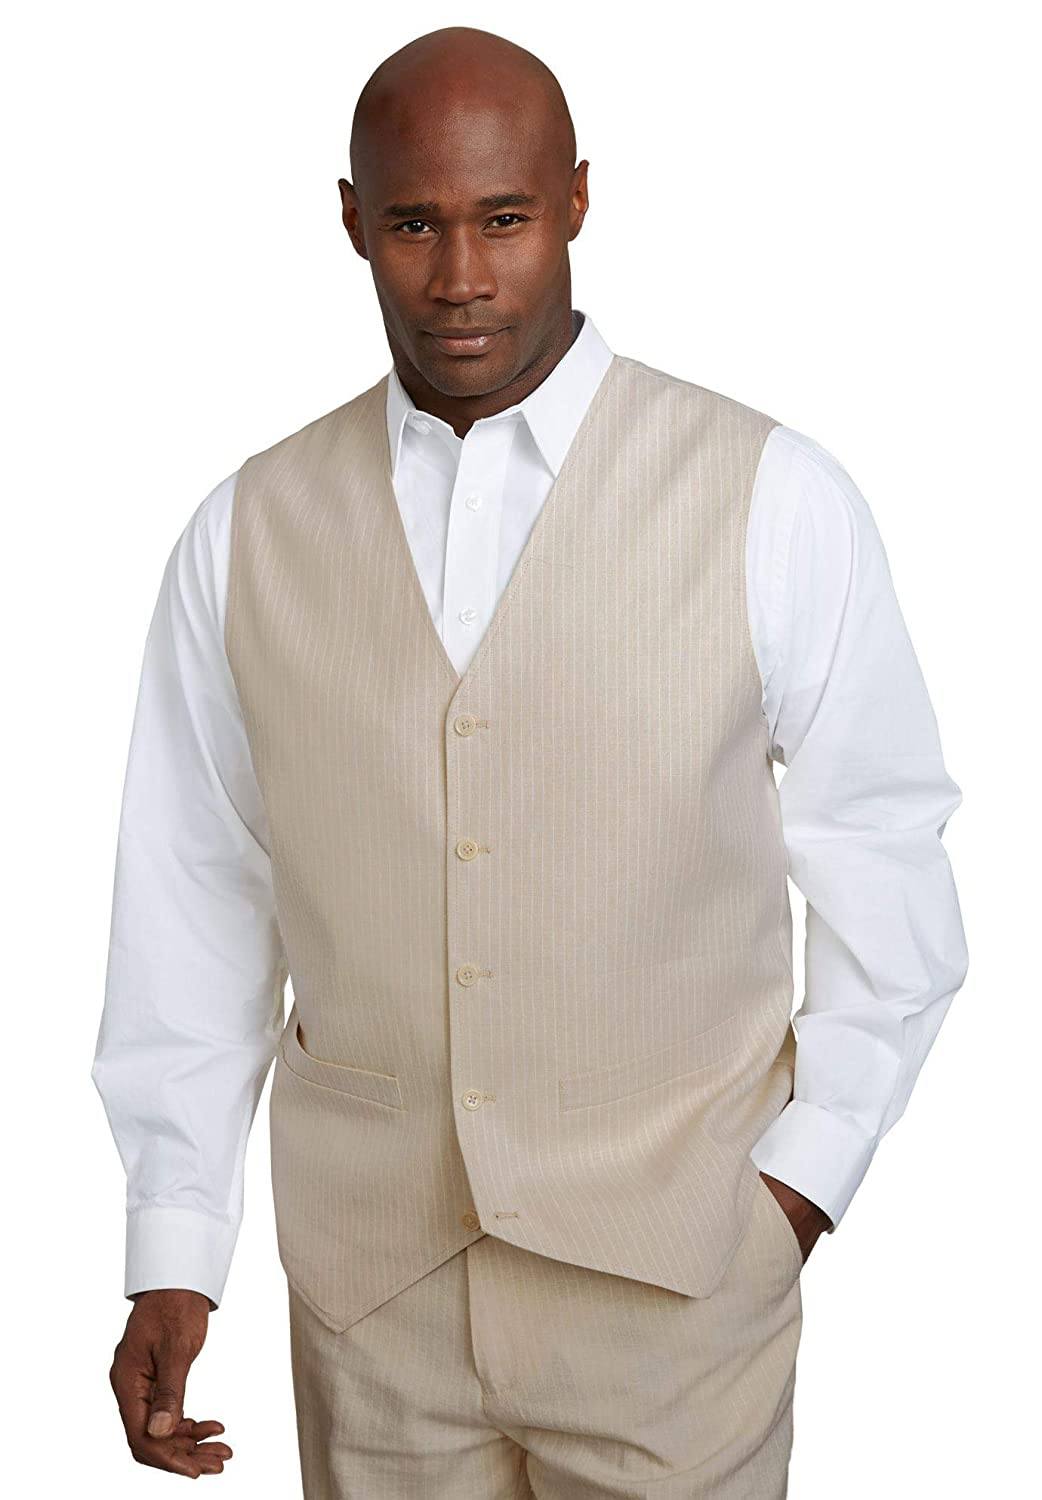 1920s Style Mens Vests KS Island Mens Big & Tall Linen Blend 5 Button Suit Vest $109.99 AT vintagedancer.com